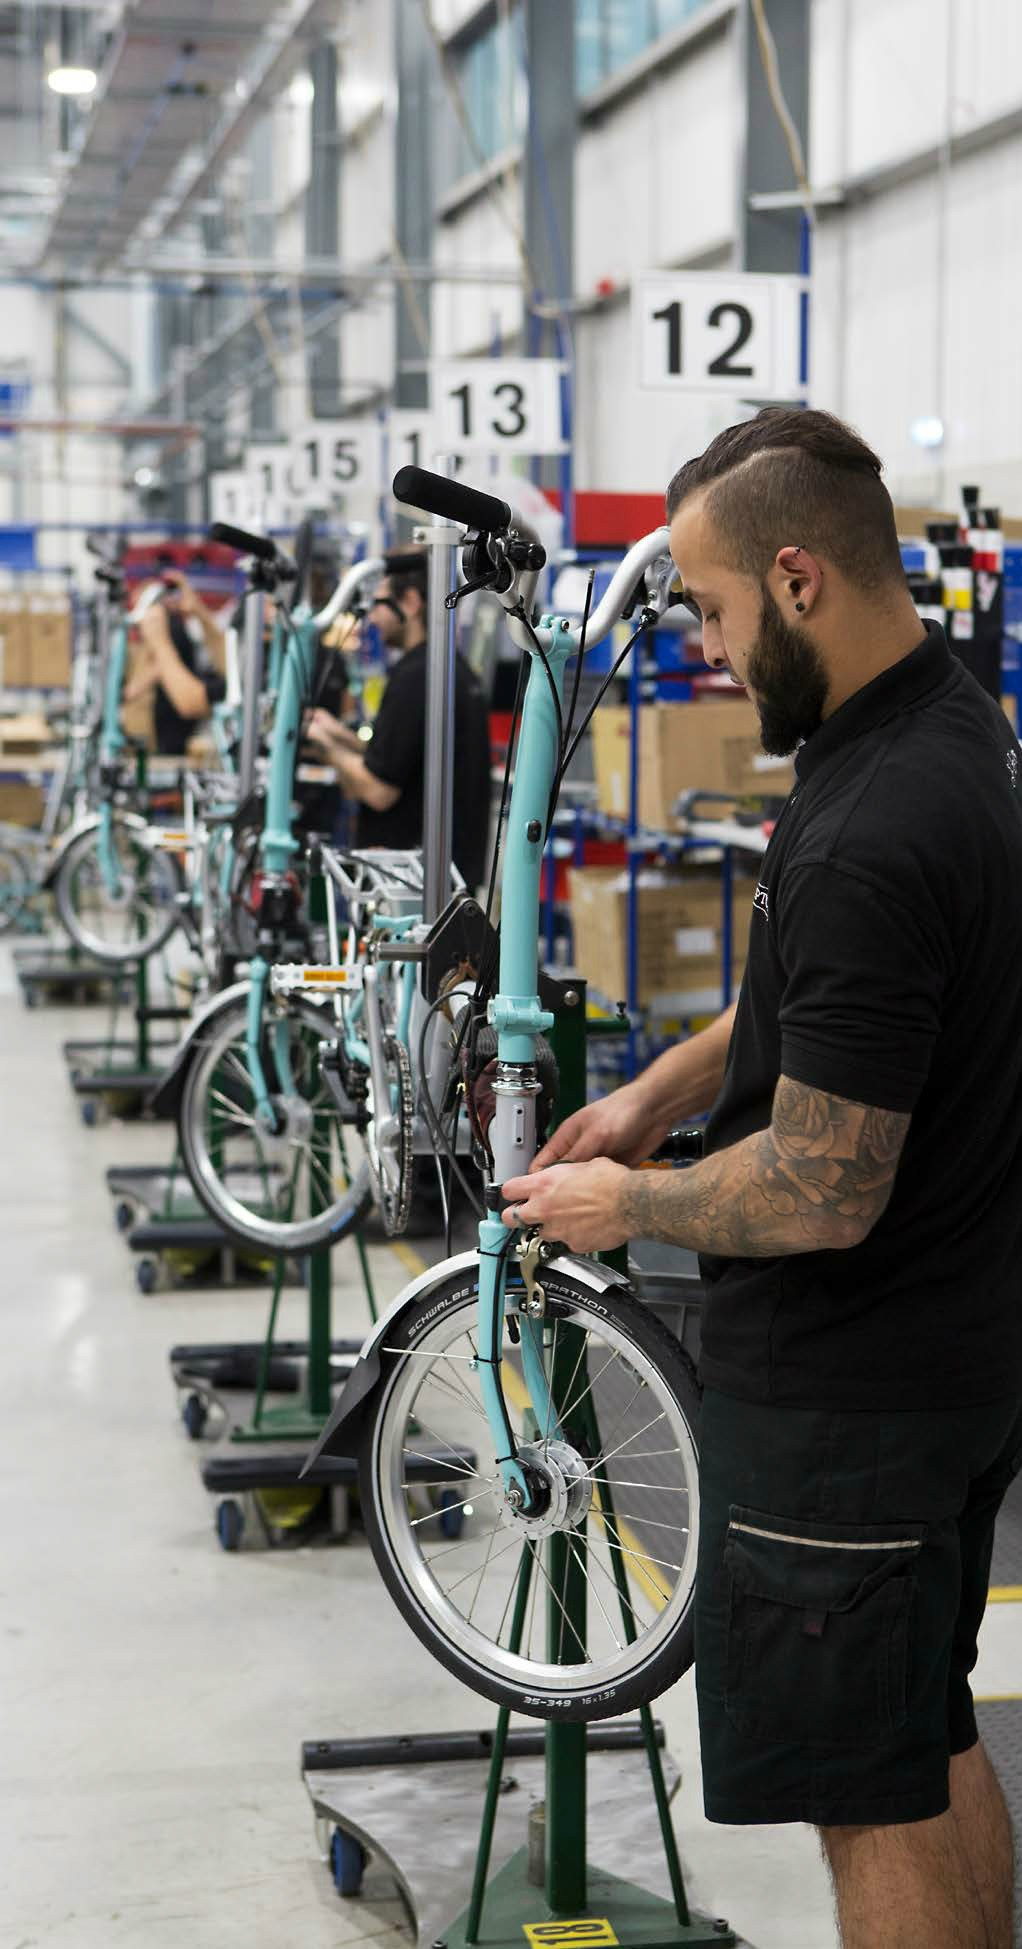 Brompton's in-house built barcode-based component tracking system enables mass-customisation - 16 million bicycle permutations are possible - image courtesy of Brompton.